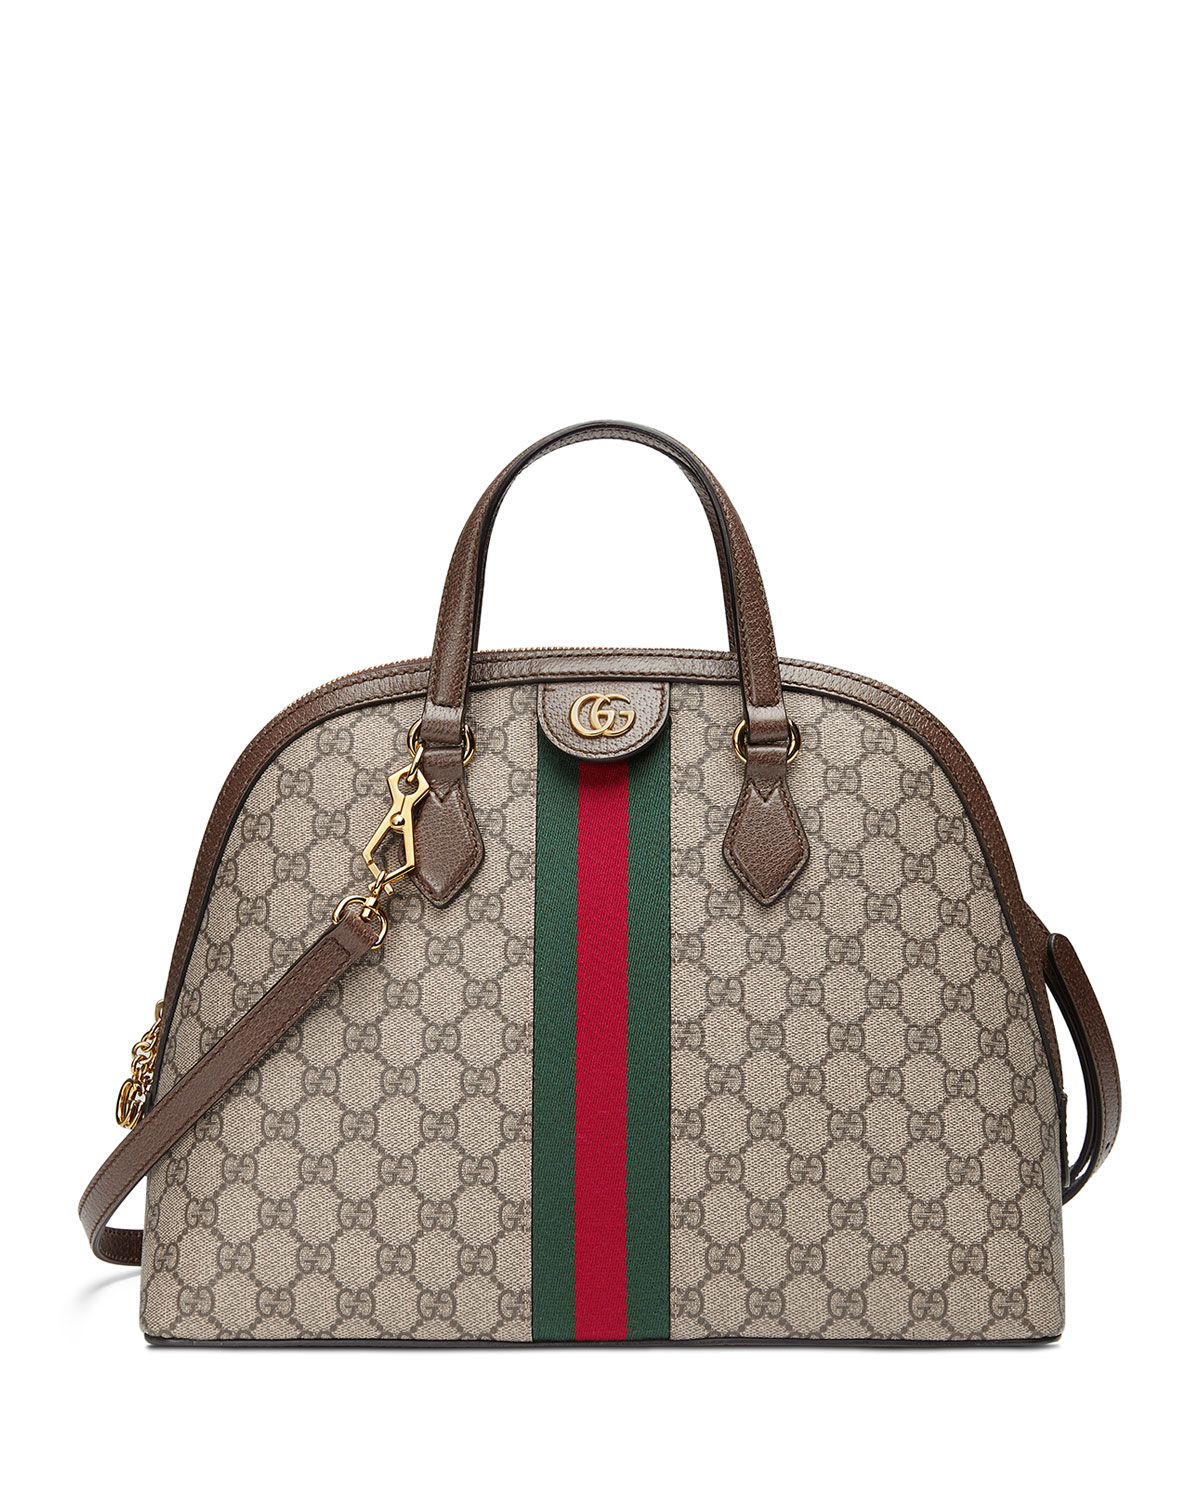 Gucci Ophidia Medium Web GG Supreme Top-Handle Bag  a90043c3a